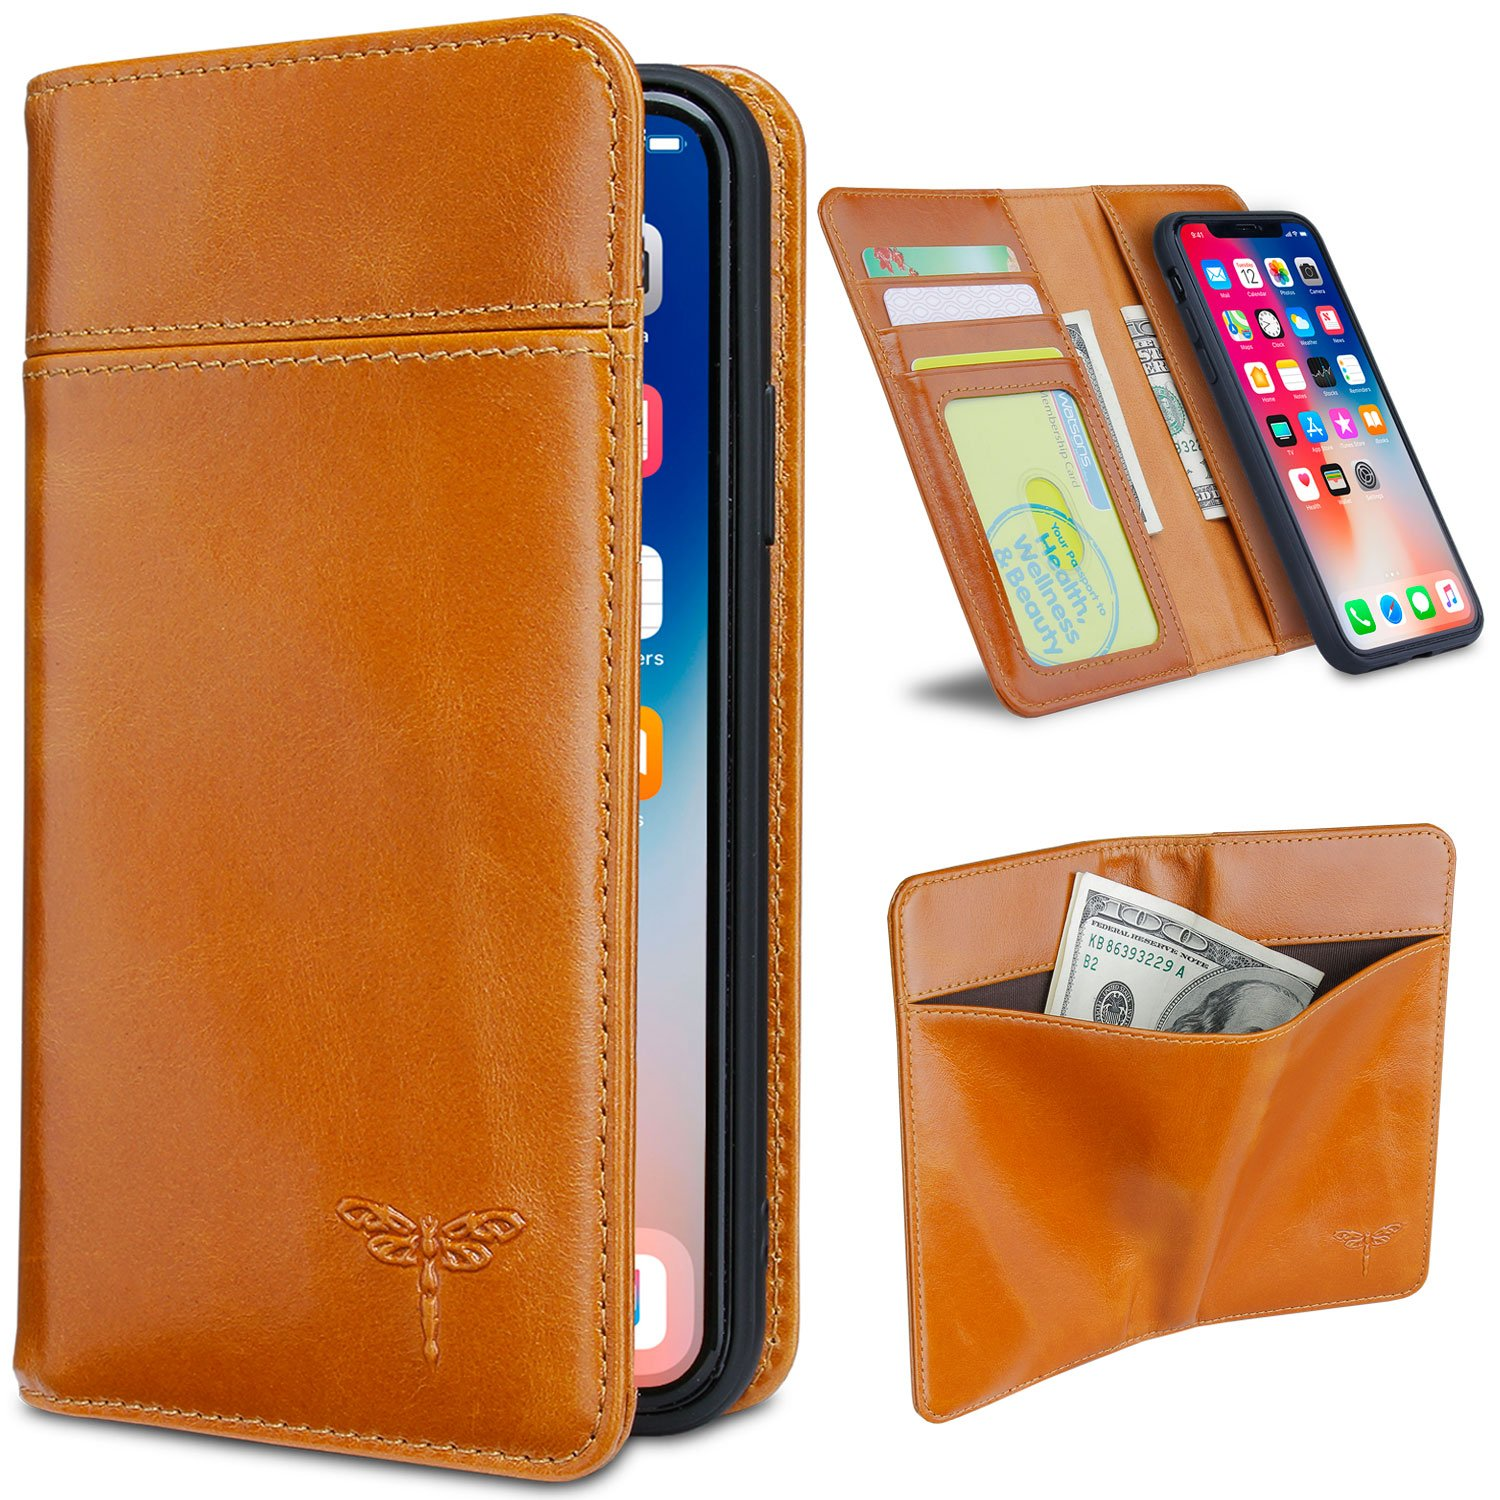 iPhone X Wallet Case, Genuine Leather iPhone X Case FRIFUN Detachable Magnetic Flip Folio Phone Cover with Card Slots Holder and TPU Full Protection Case for iPhone X/ iPhone 10 (5.8inch) Brown